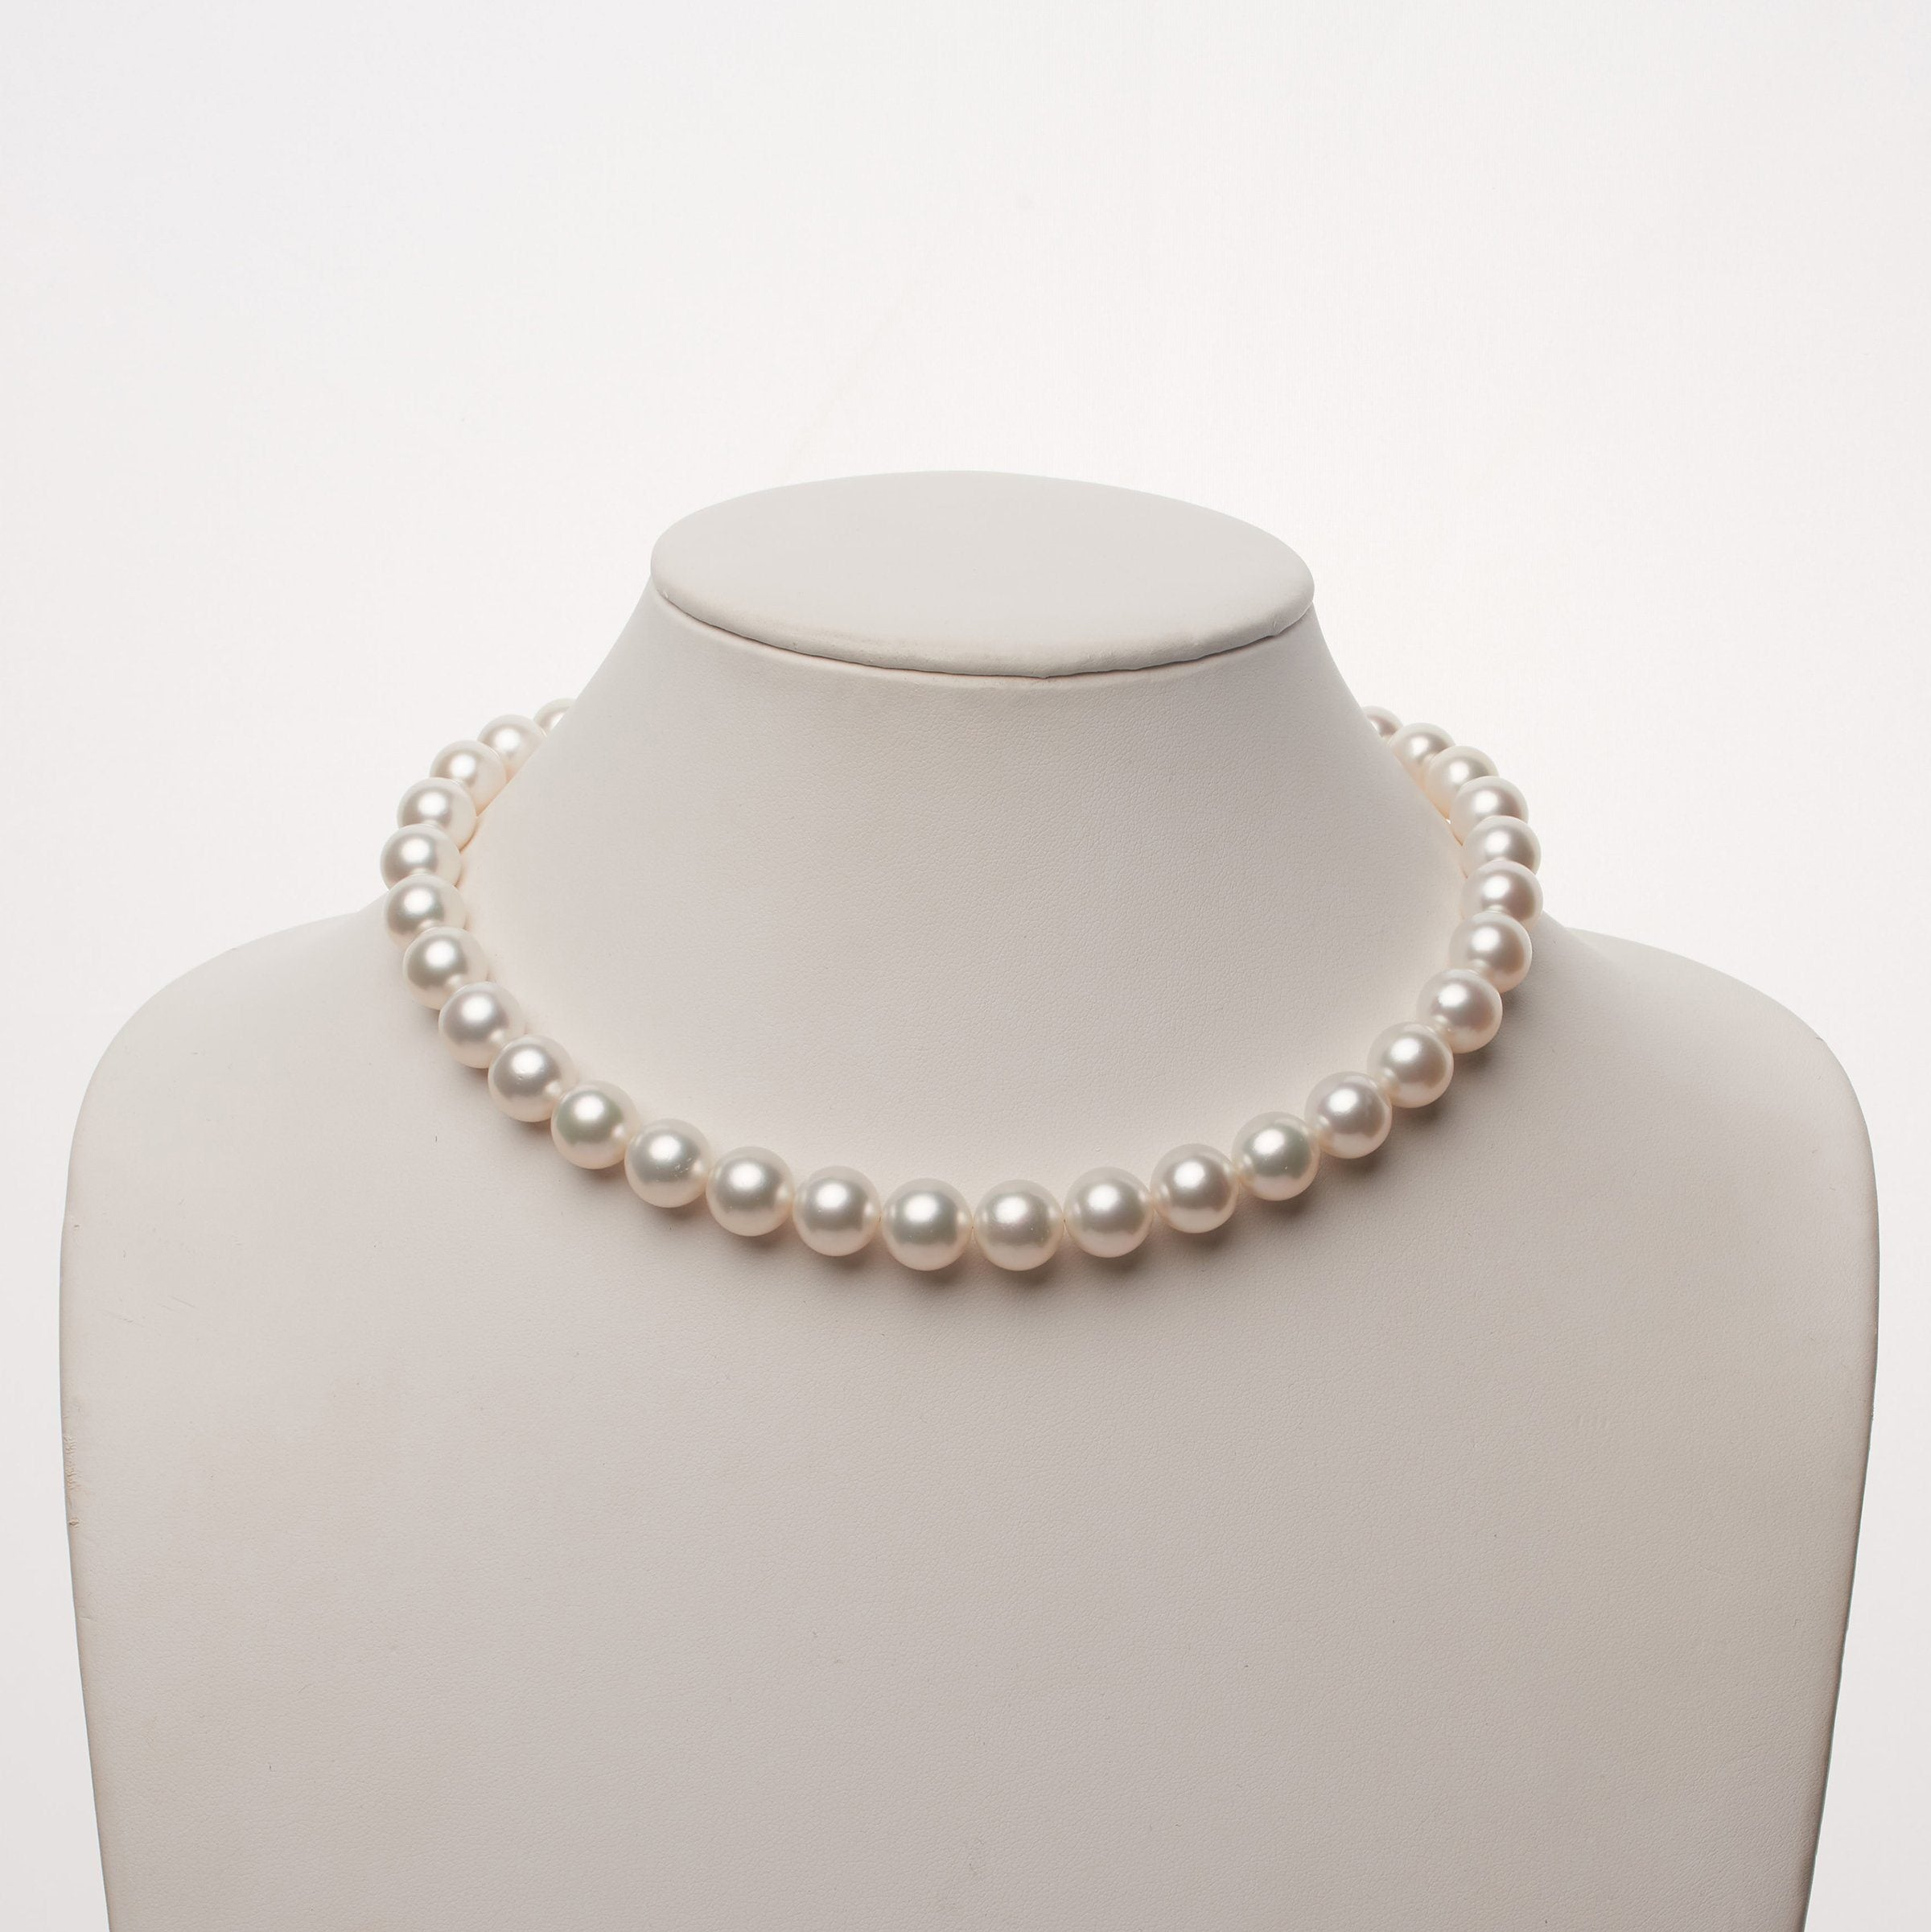 The Berceuse White South Sea Pearl Necklace